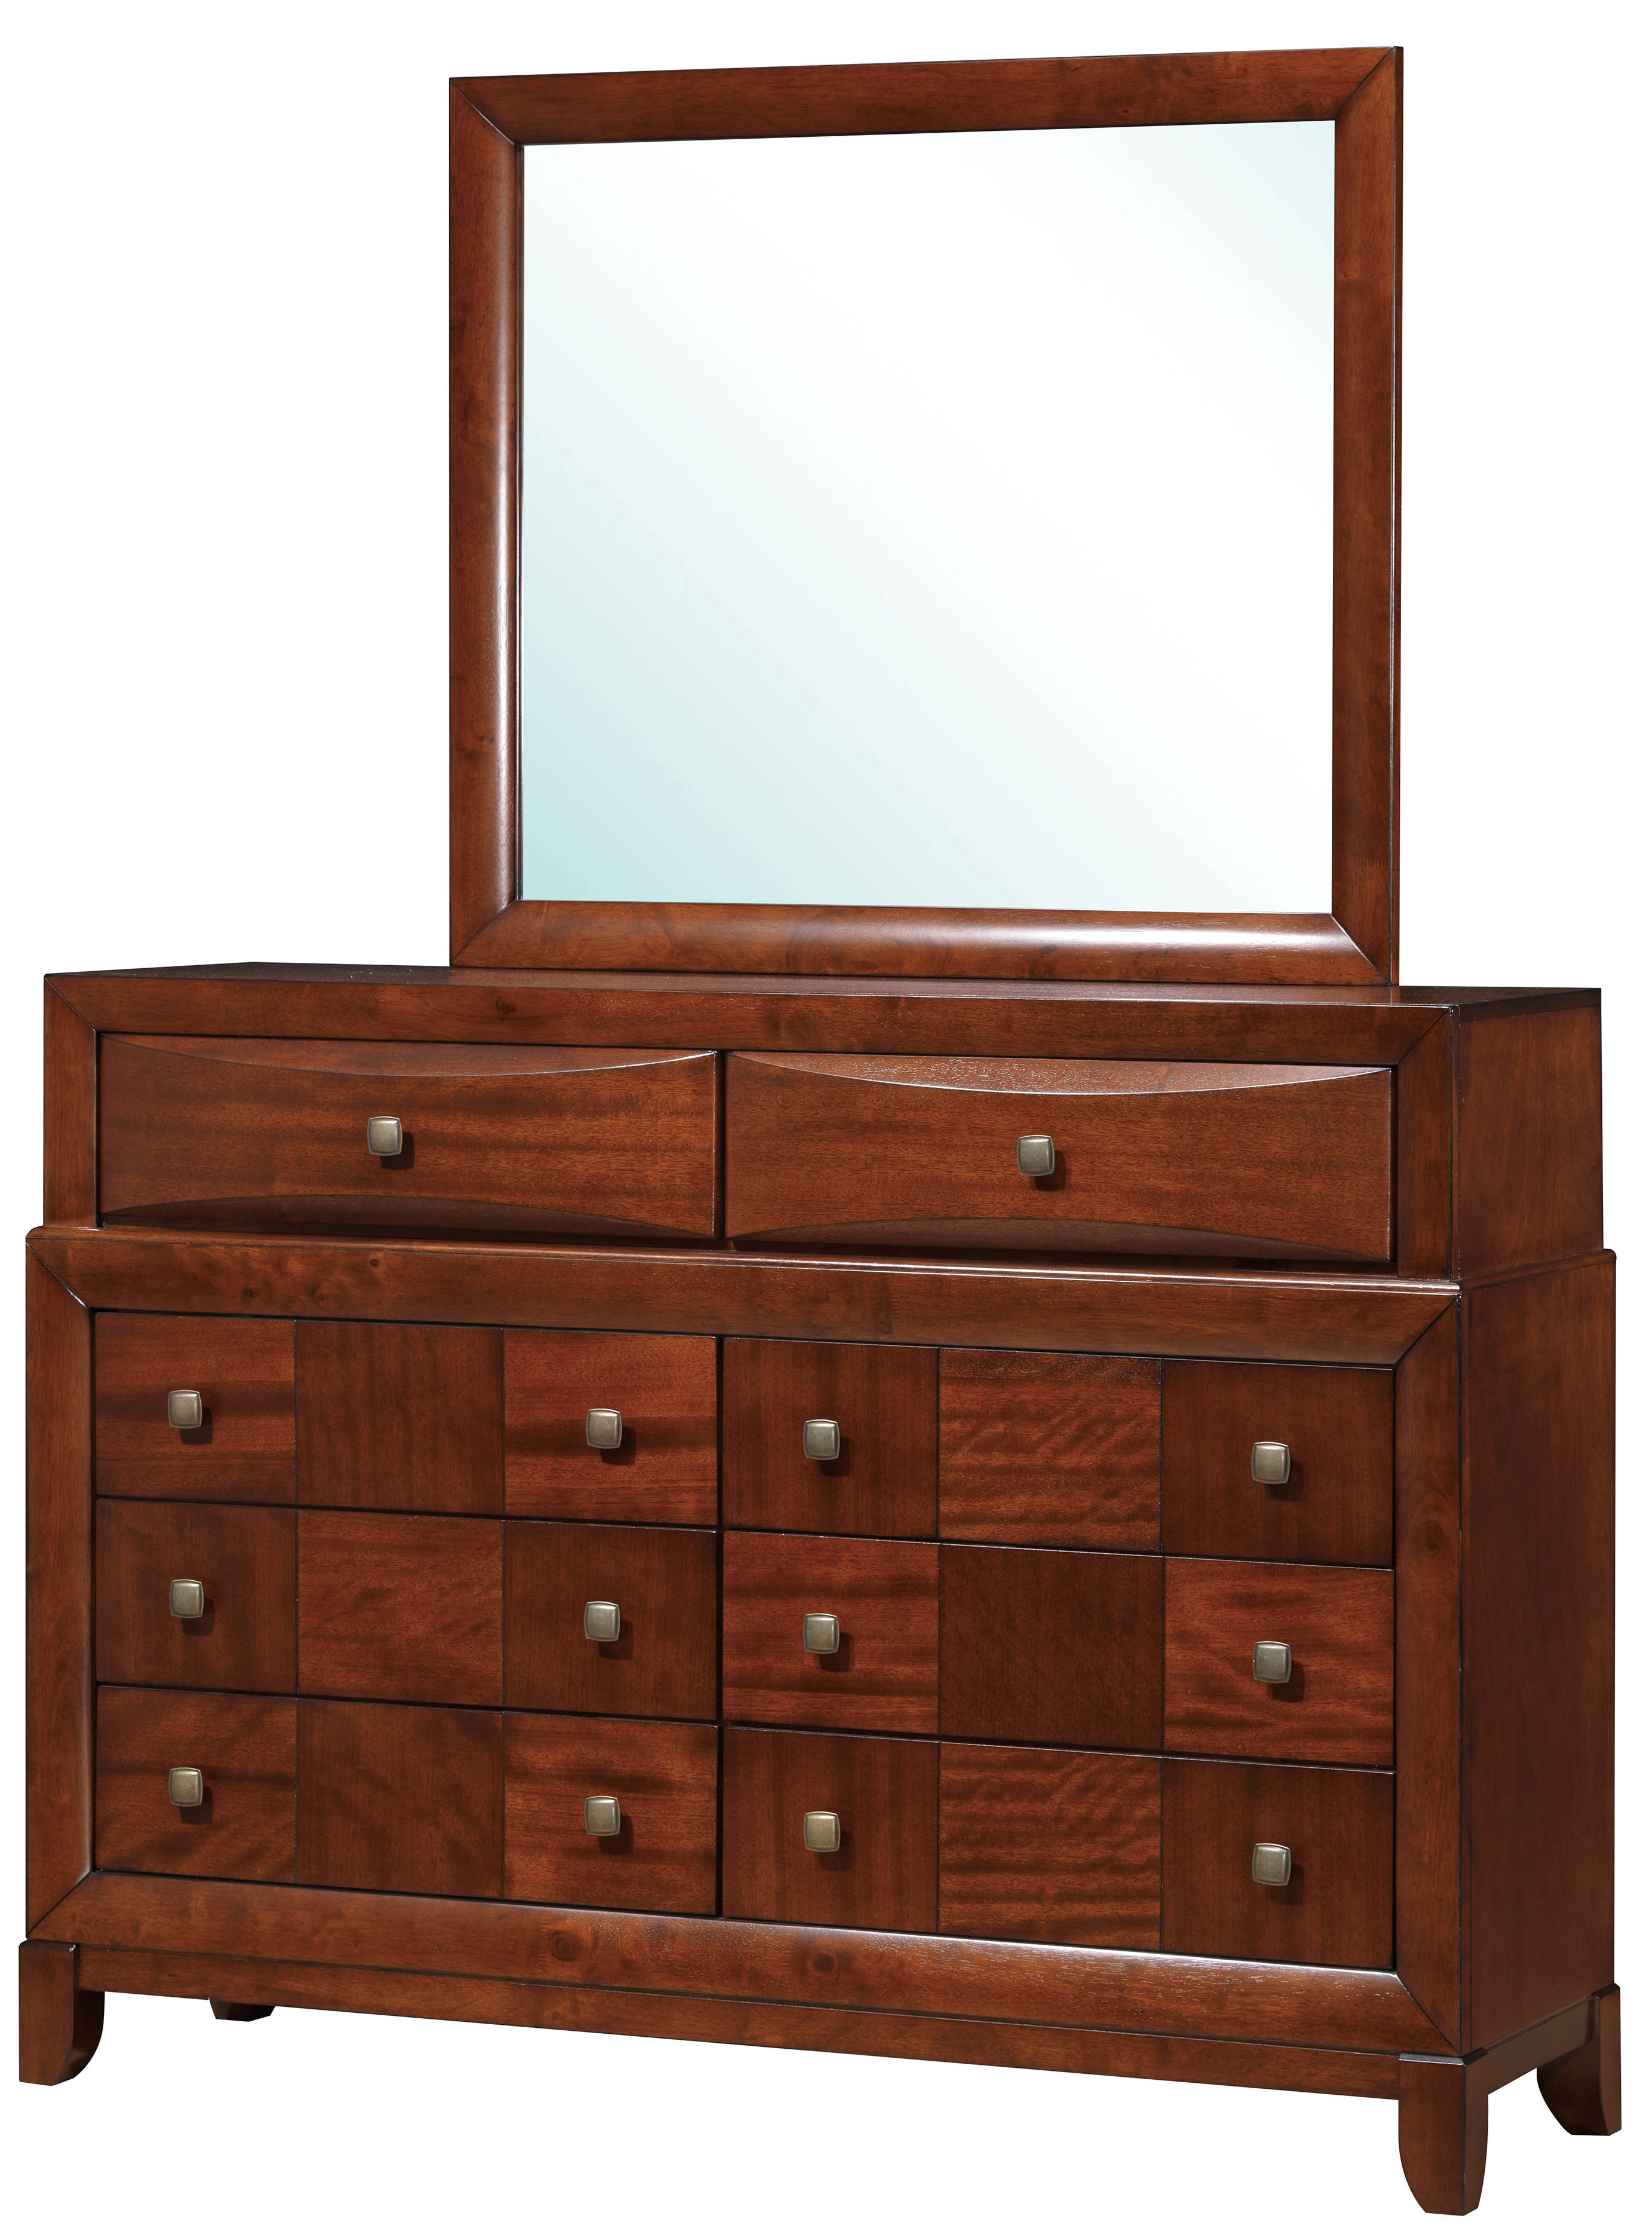 Oak Wood Dressers ~ Oasis oak wood dresser mirror the classy home